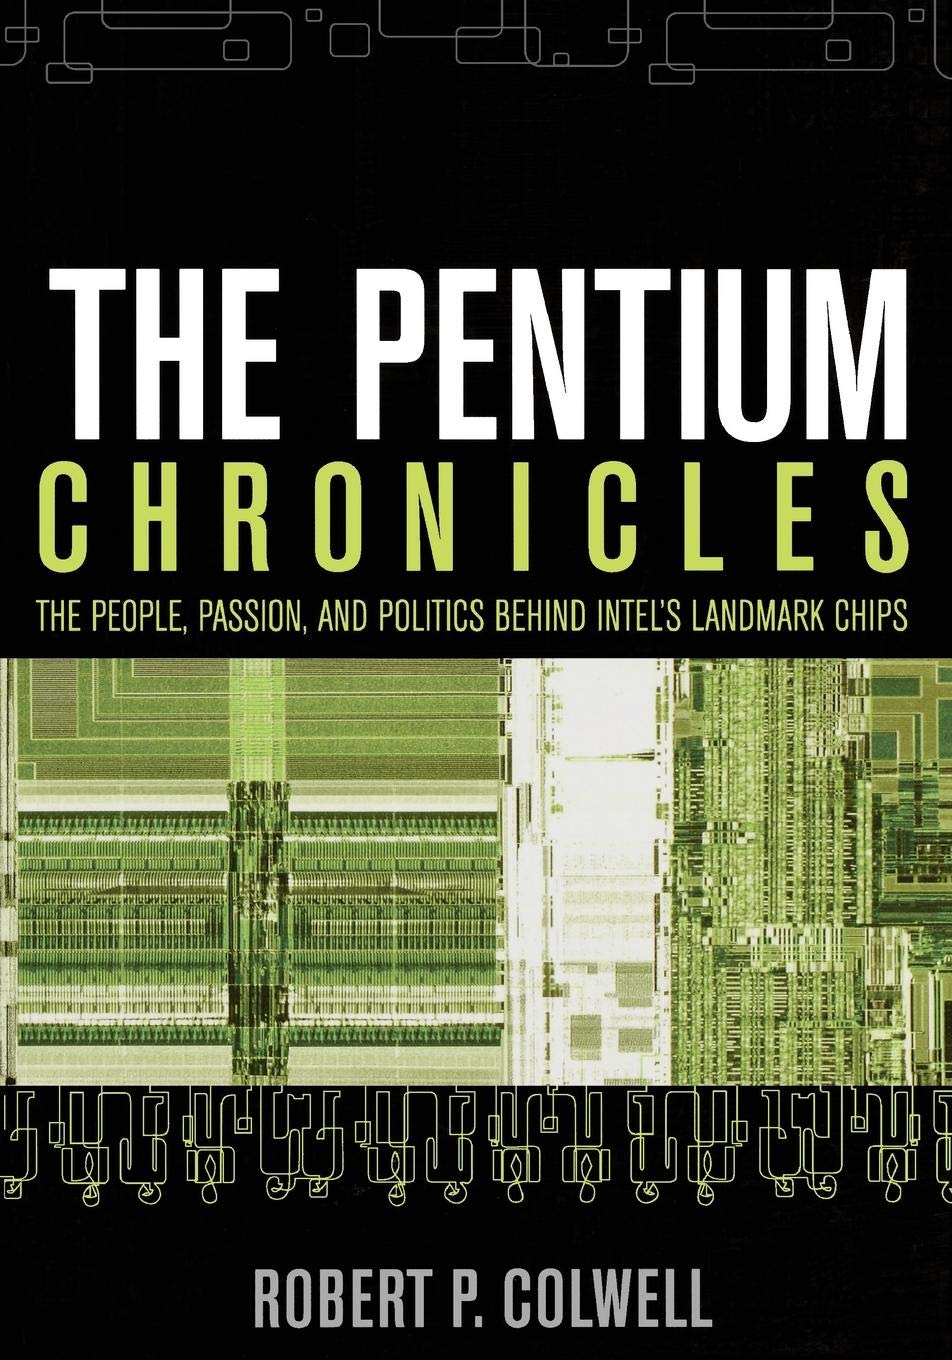 The Pentium Chronicles: The People, Passion, and Politics Behind Intel's Landmark Chips (Practitioners) por Robert P. Colwell